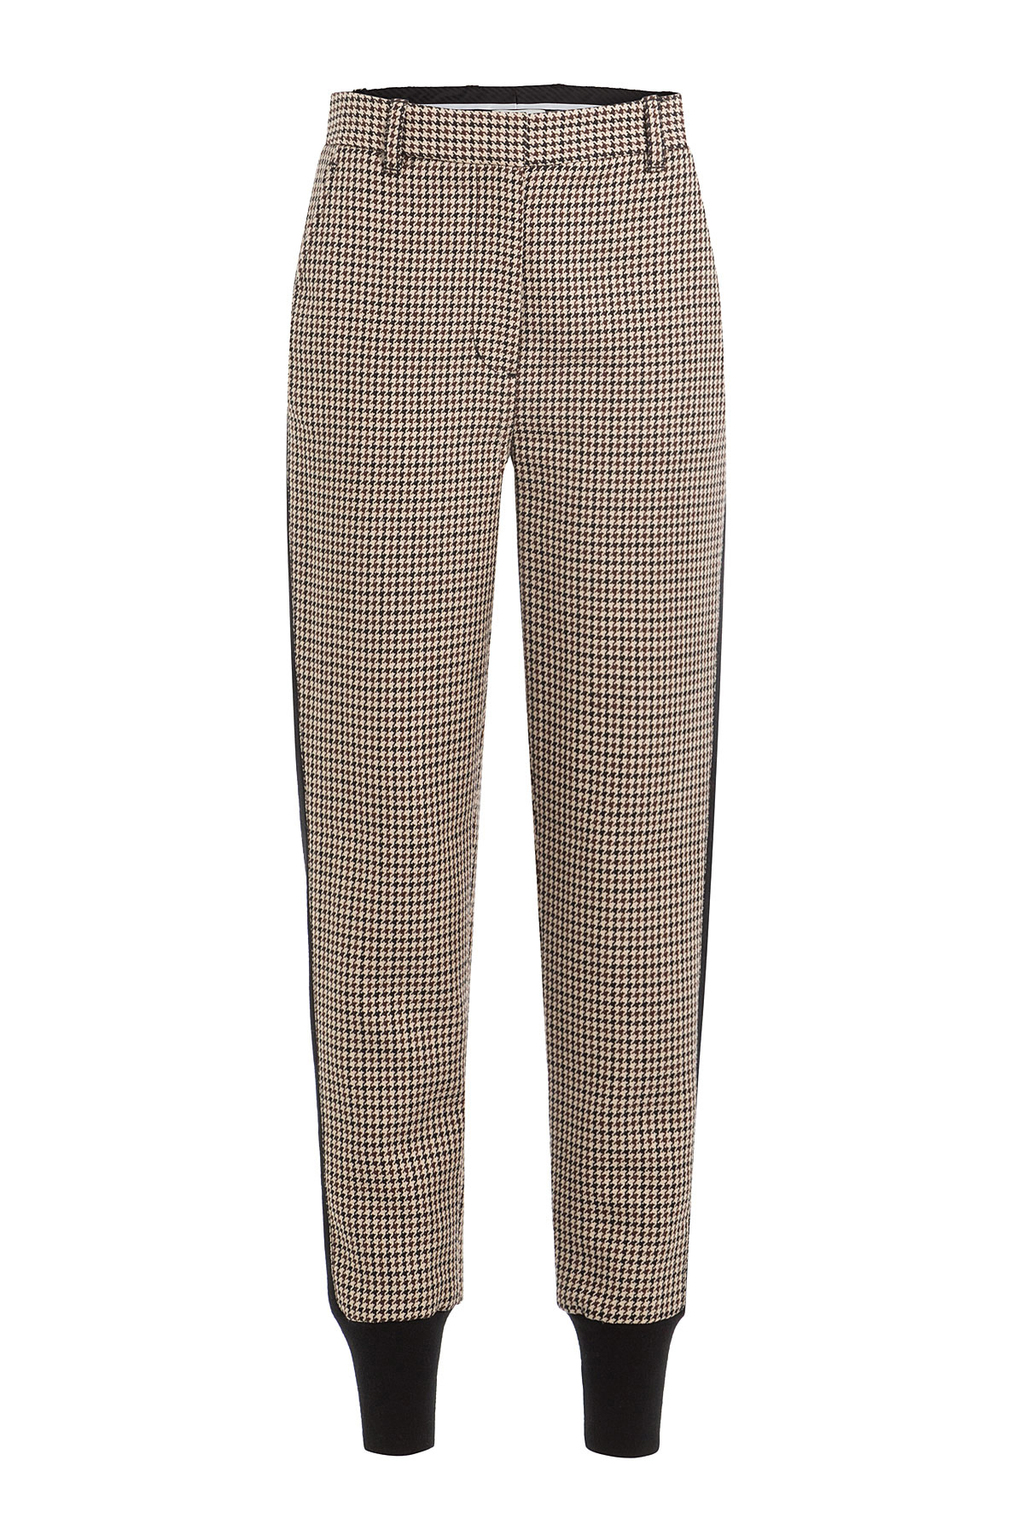 Printed Wool Pants With Cuffed Ankles Brown - length: standard; pattern: plain; waist: mid/regular rise; predominant colour: stone; secondary colour: black; fibres: wool - mix; waist detail: narrow waistband; fit: tapered; pattern type: fabric; texture group: woven light midweight; style: standard; occasions: creative work; wardrobe: basic; season: a/w 2016